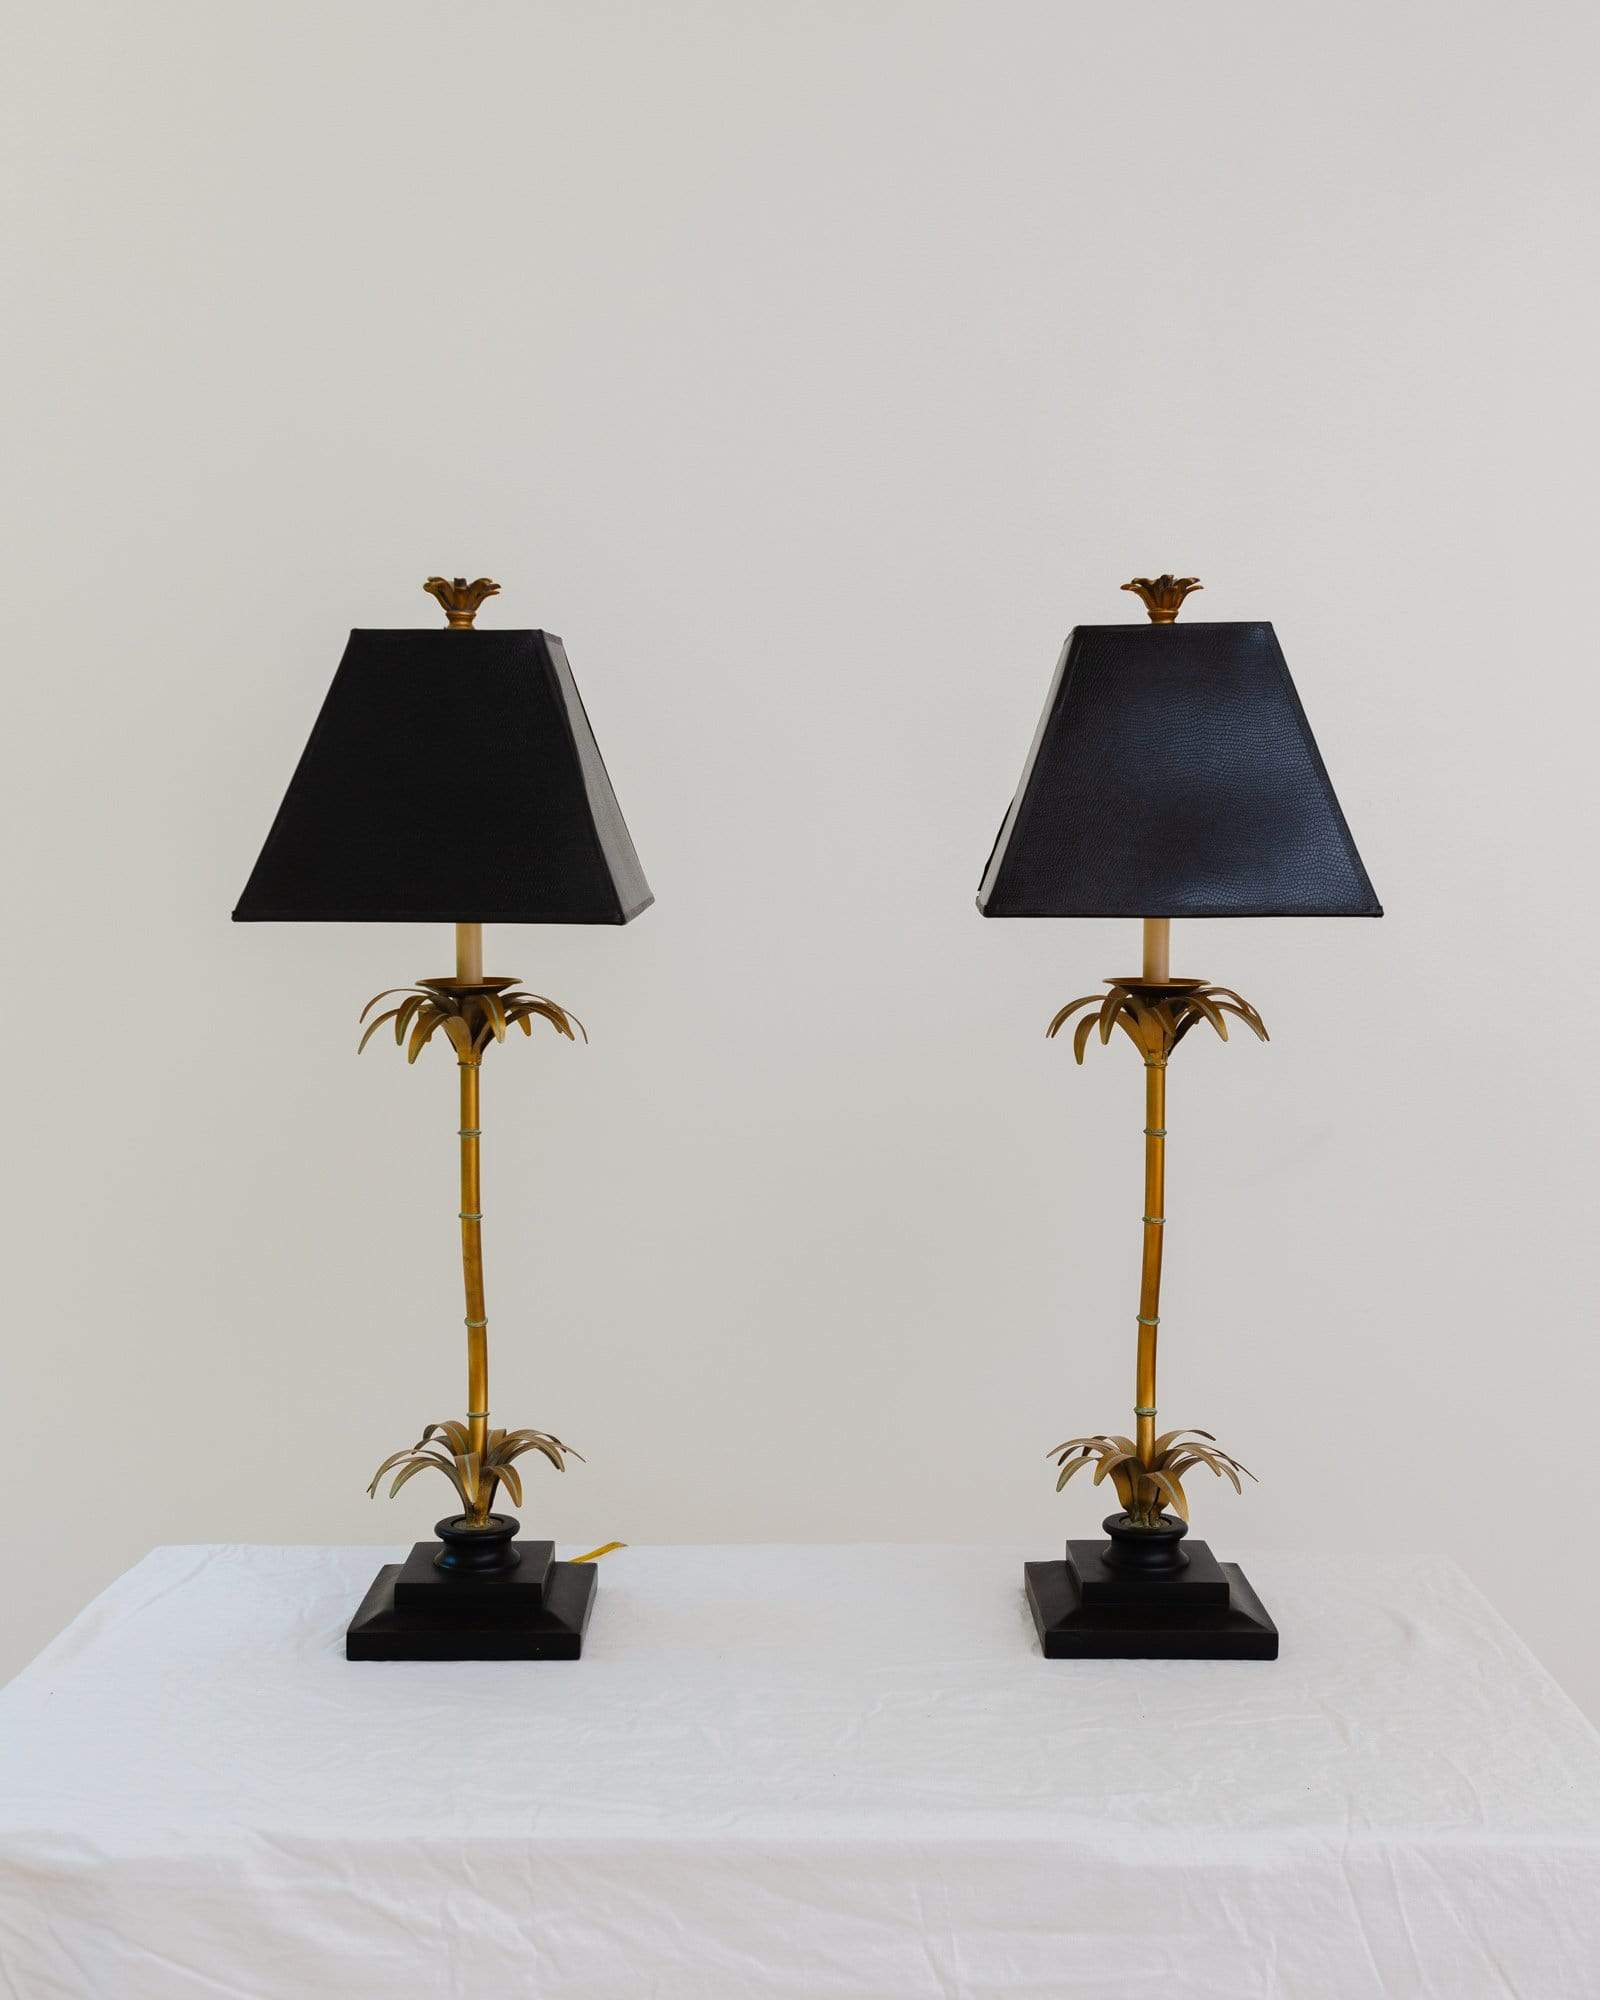 1960s Hollywood Regency Style Palm Tree Table Lamp, A Pair - Nice Vintage Things